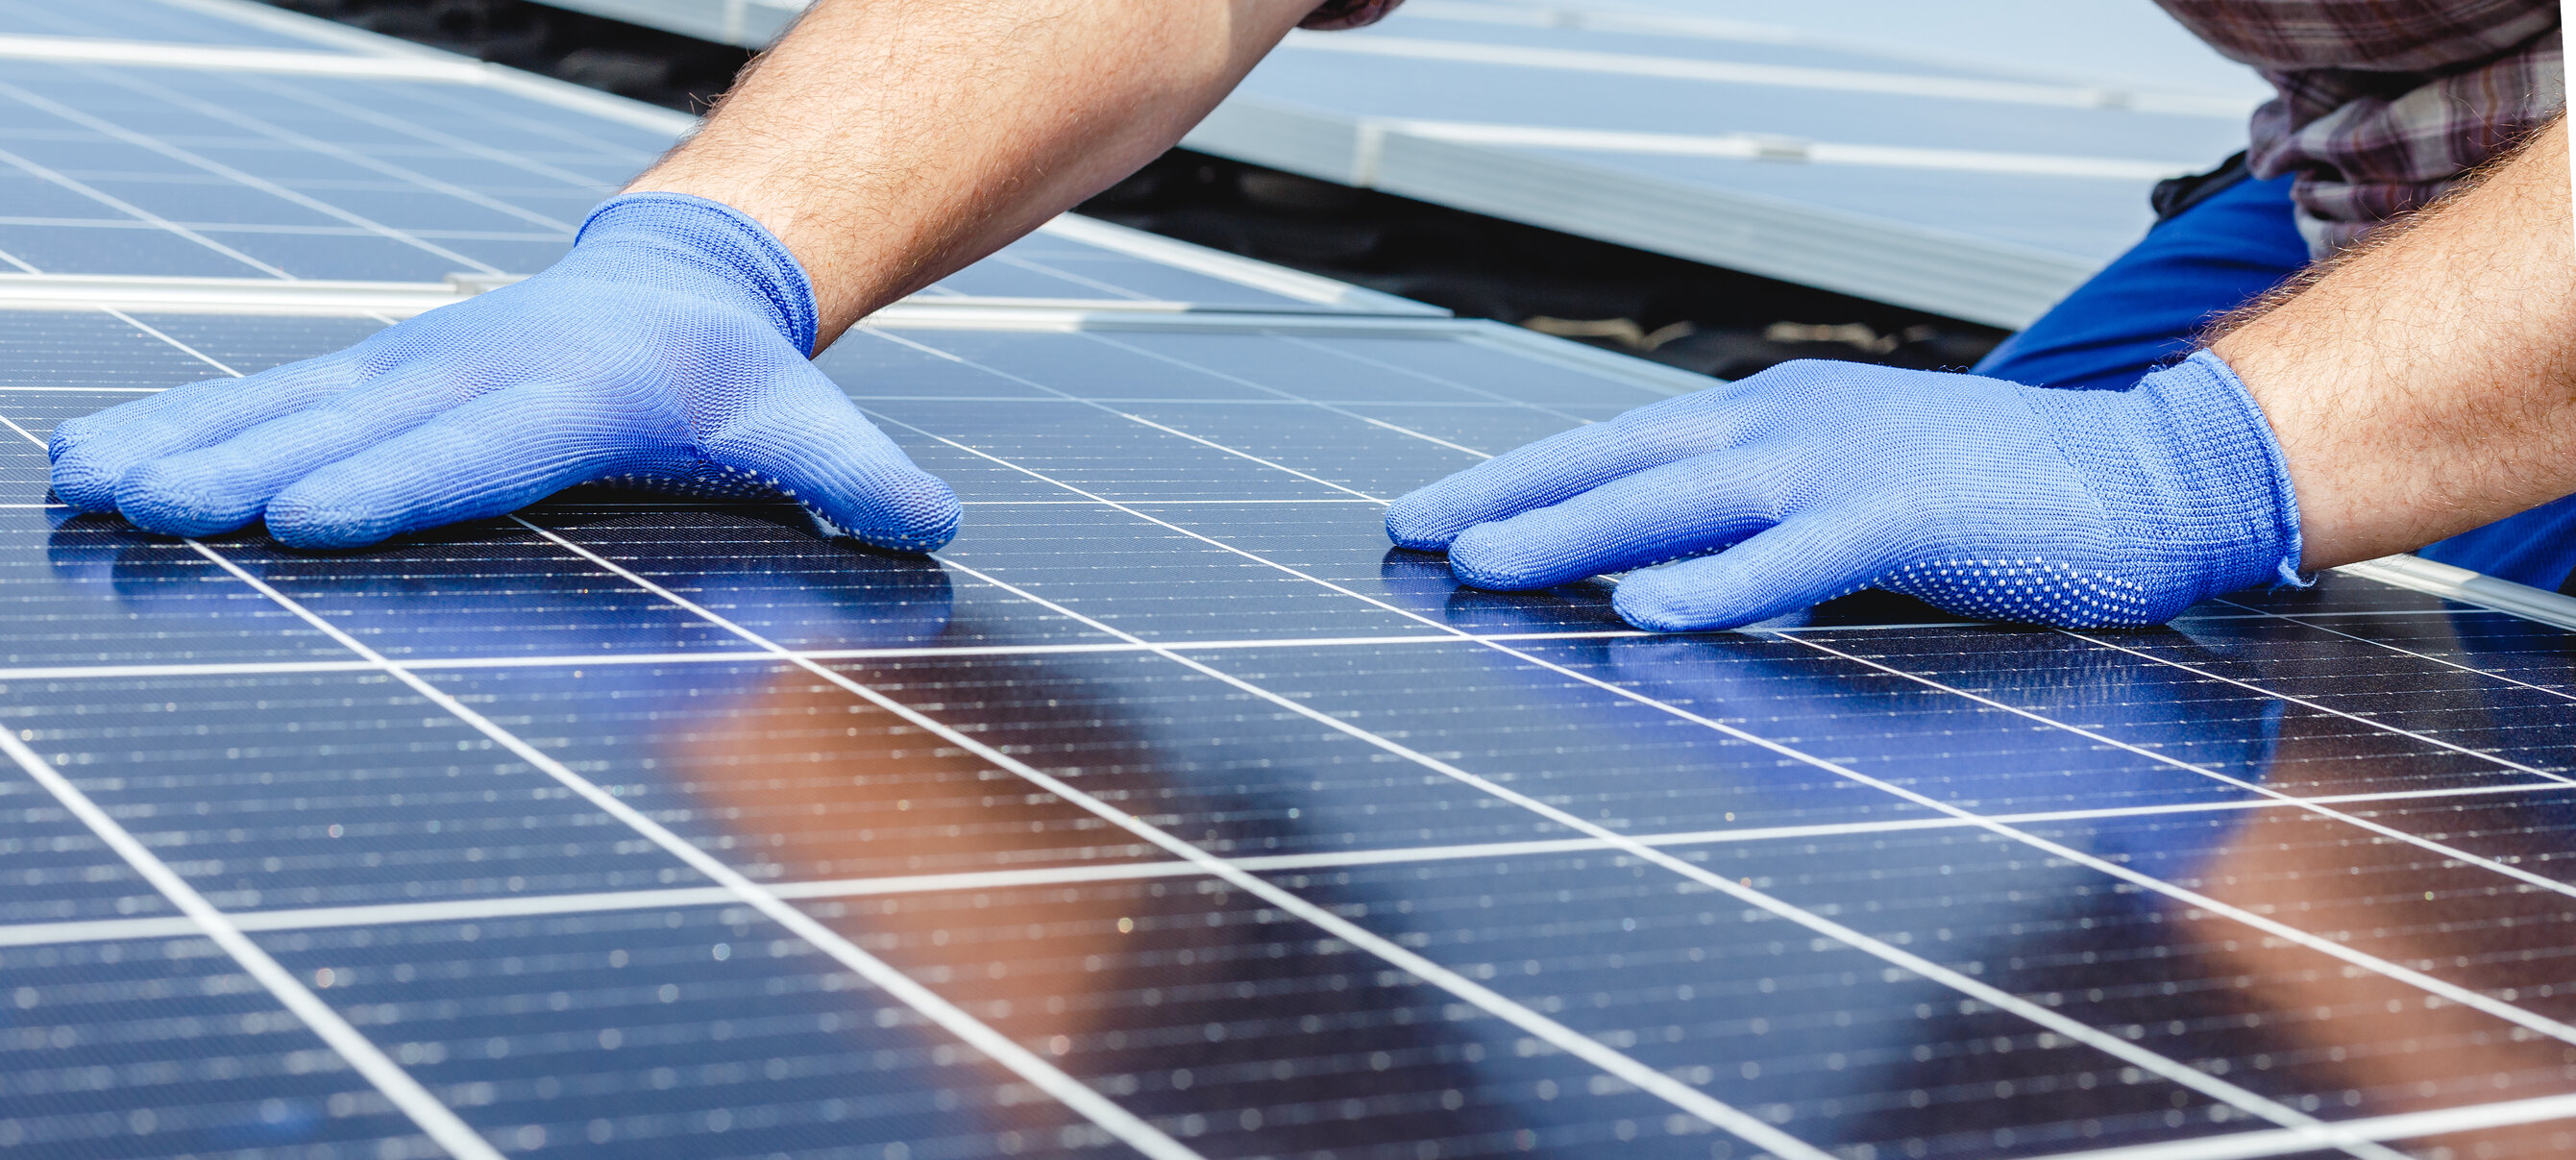 A close-up of a man wearing blue gloves installing solar panels.